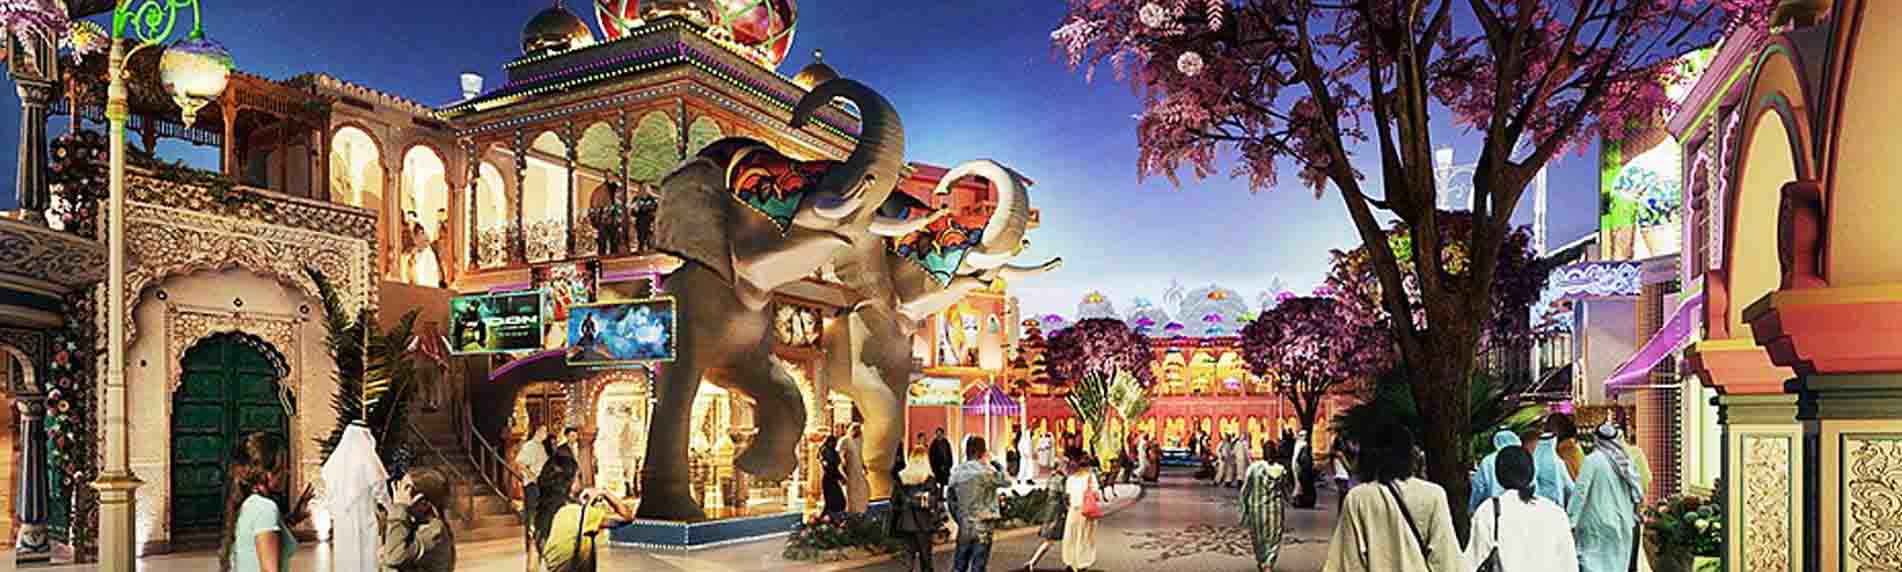 Rajmahal-Theatre-Bollywood-Parks-from-Abu-Dhabi